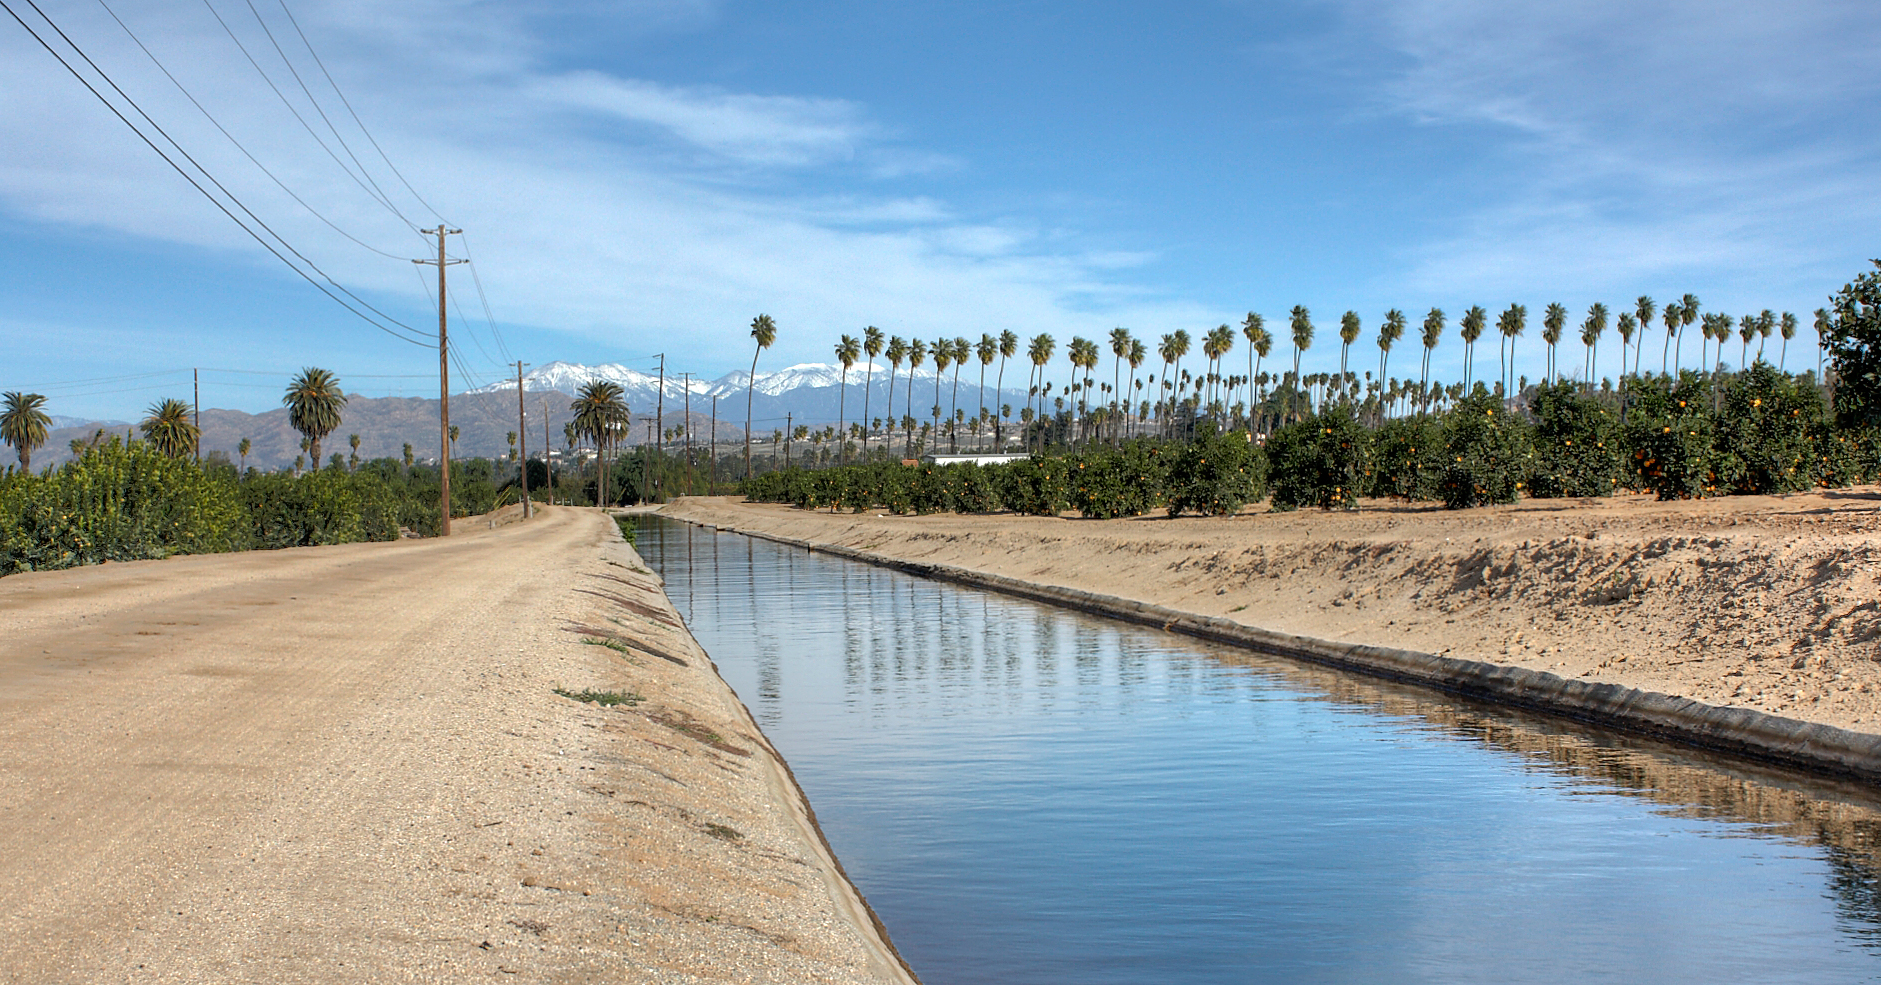 Gage Canal with a citrus grove on the right.